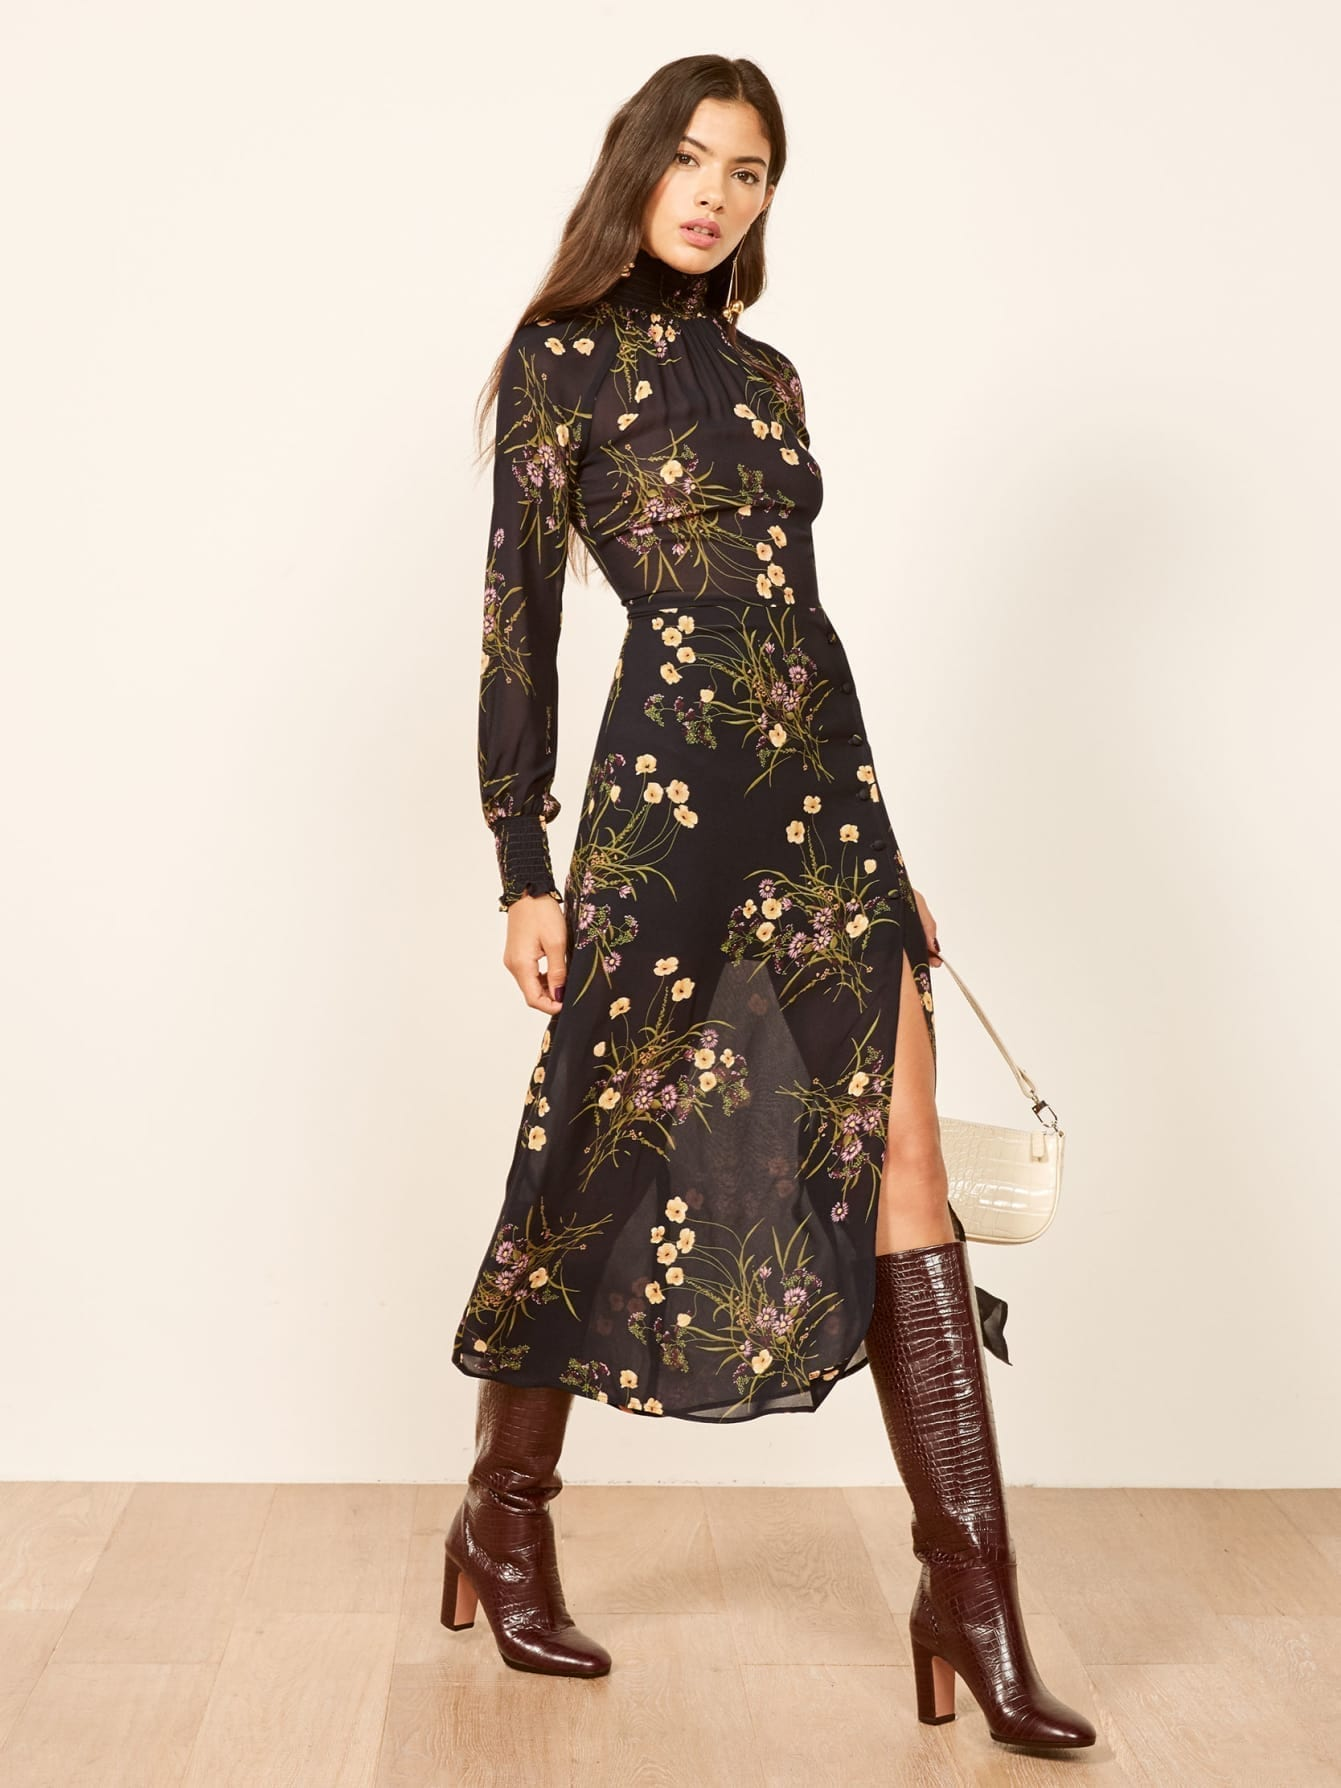 REFORMATION Georgina Black / Floral Printed Dress